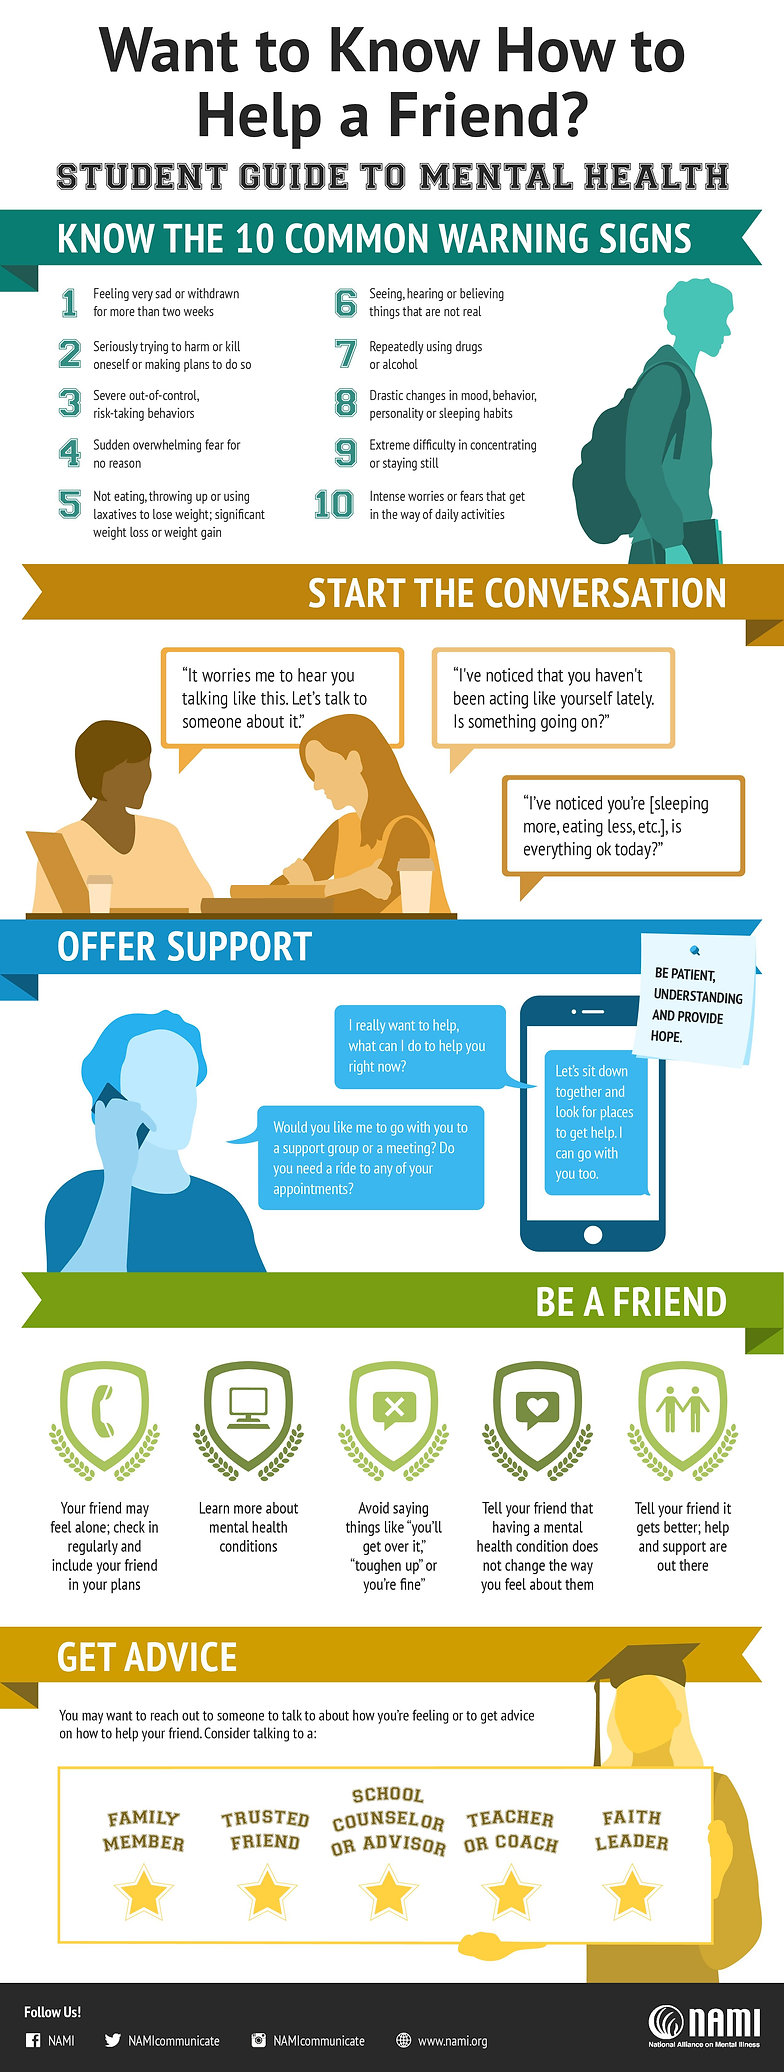 NAMI-Want-to-know-how-to-help-a-friend[1